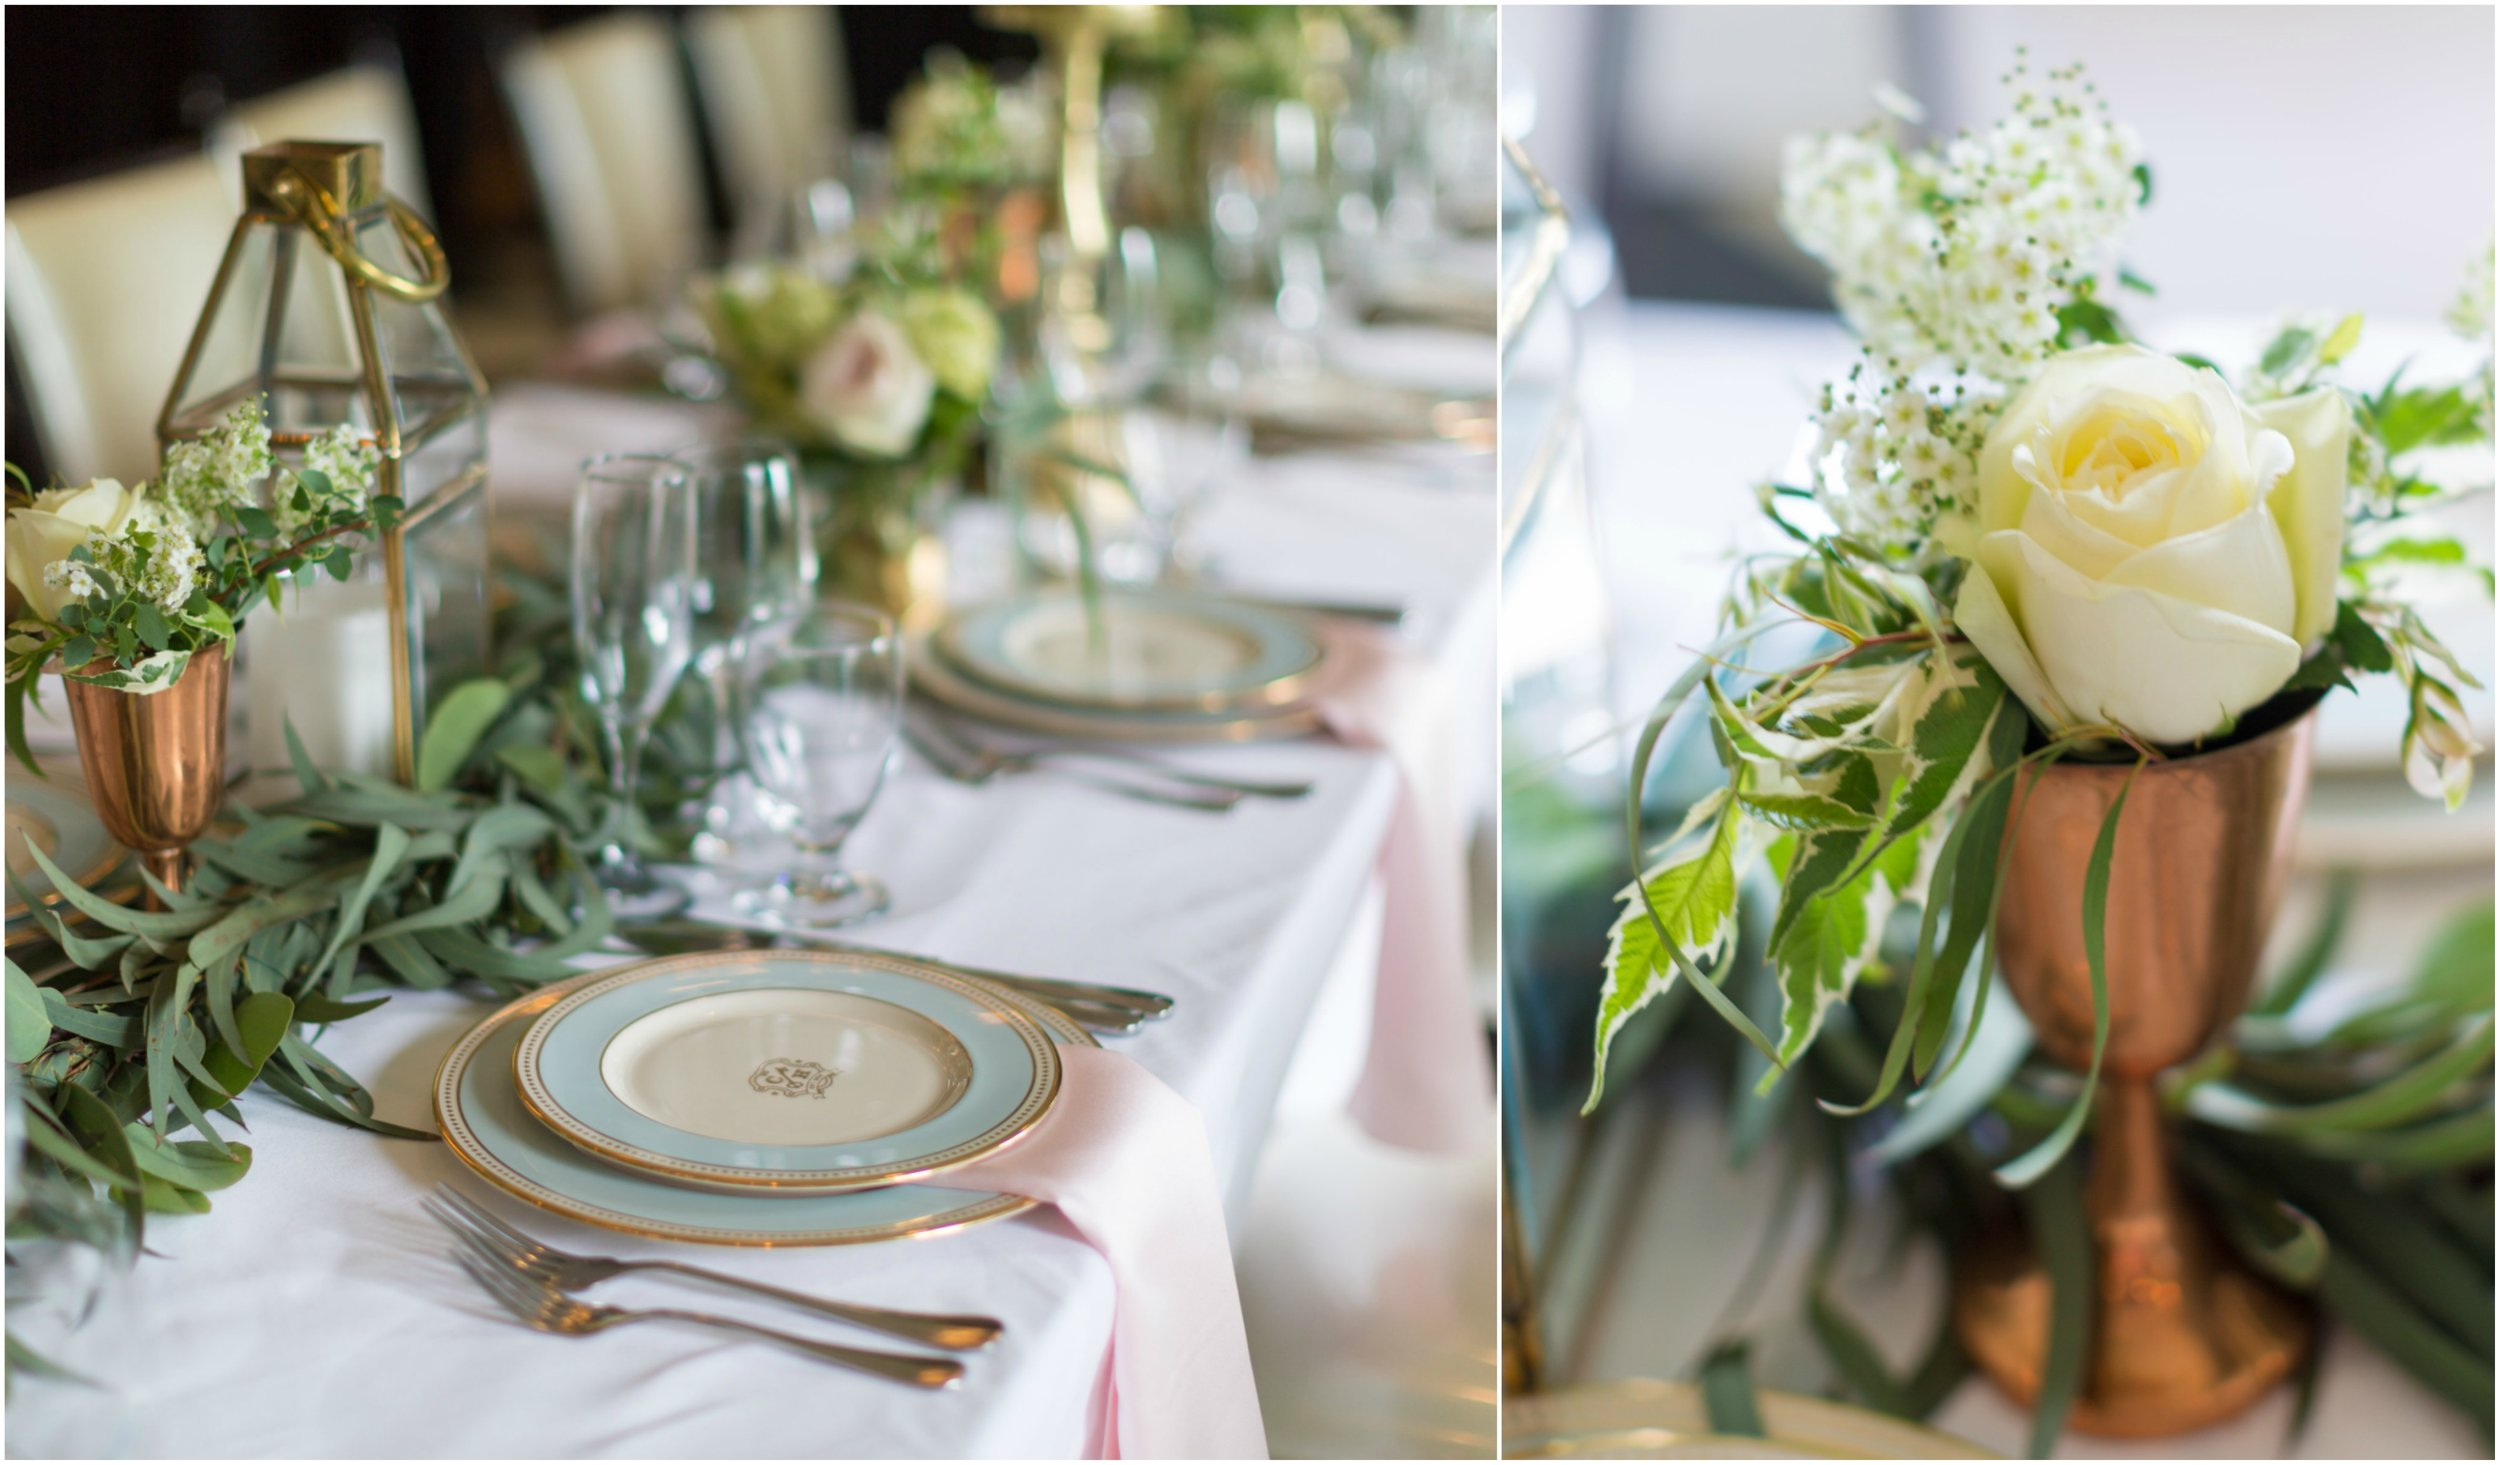 Table runner details by A Garden Party florist at Congress Hall